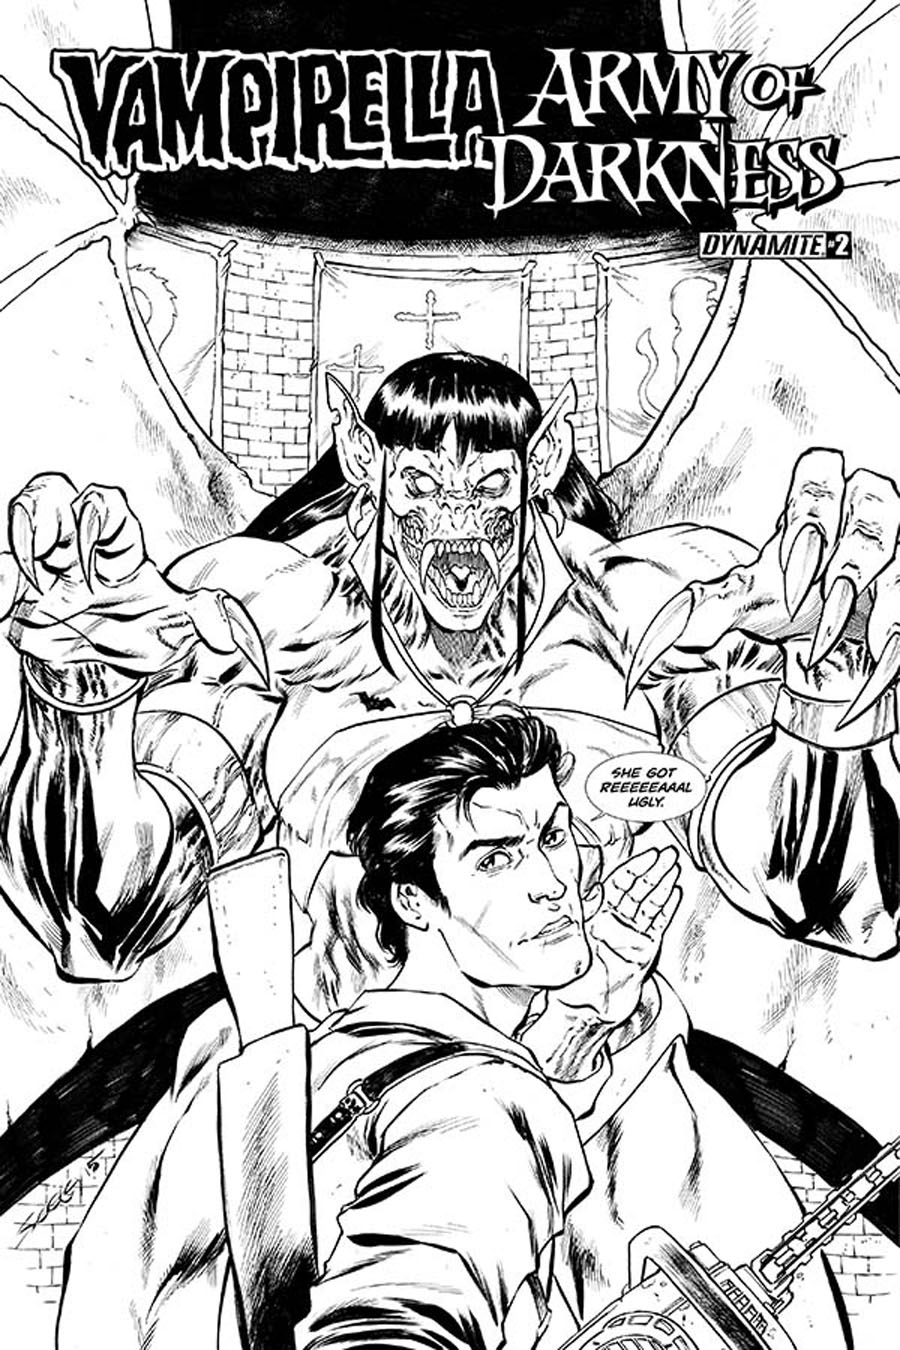 Vampirella Army Of Darkness #2 Cover C Incentive Tim Seeley Black & White Cover